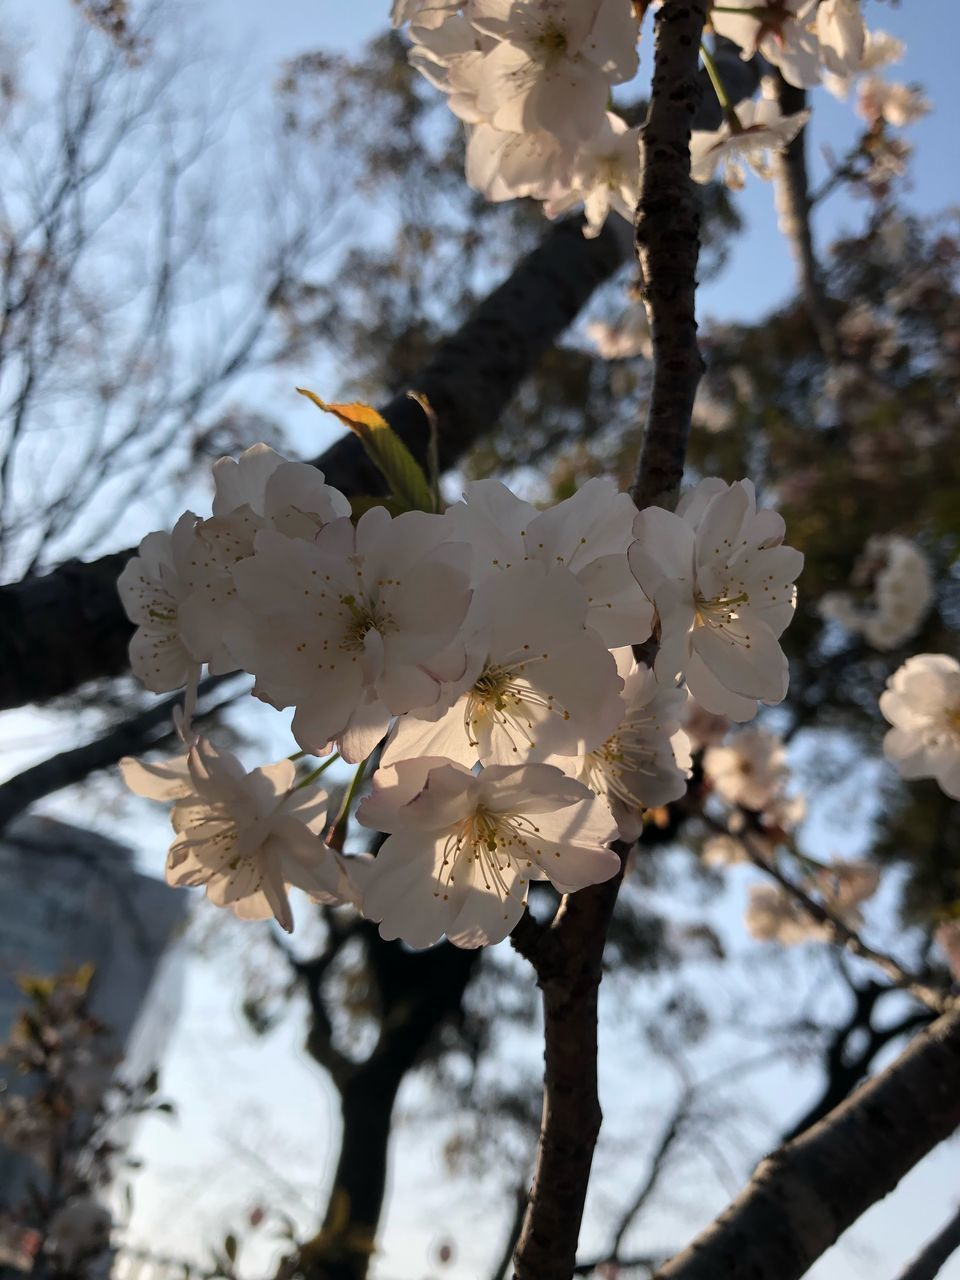 plant, flowering plant, flower, fragility, tree, vulnerability, blossom, freshness, growth, beauty in nature, focus on foreground, branch, springtime, white color, close-up, day, twig, petal, cherry blossom, nature, flower head, no people, pollen, cherry tree, outdoors, spring